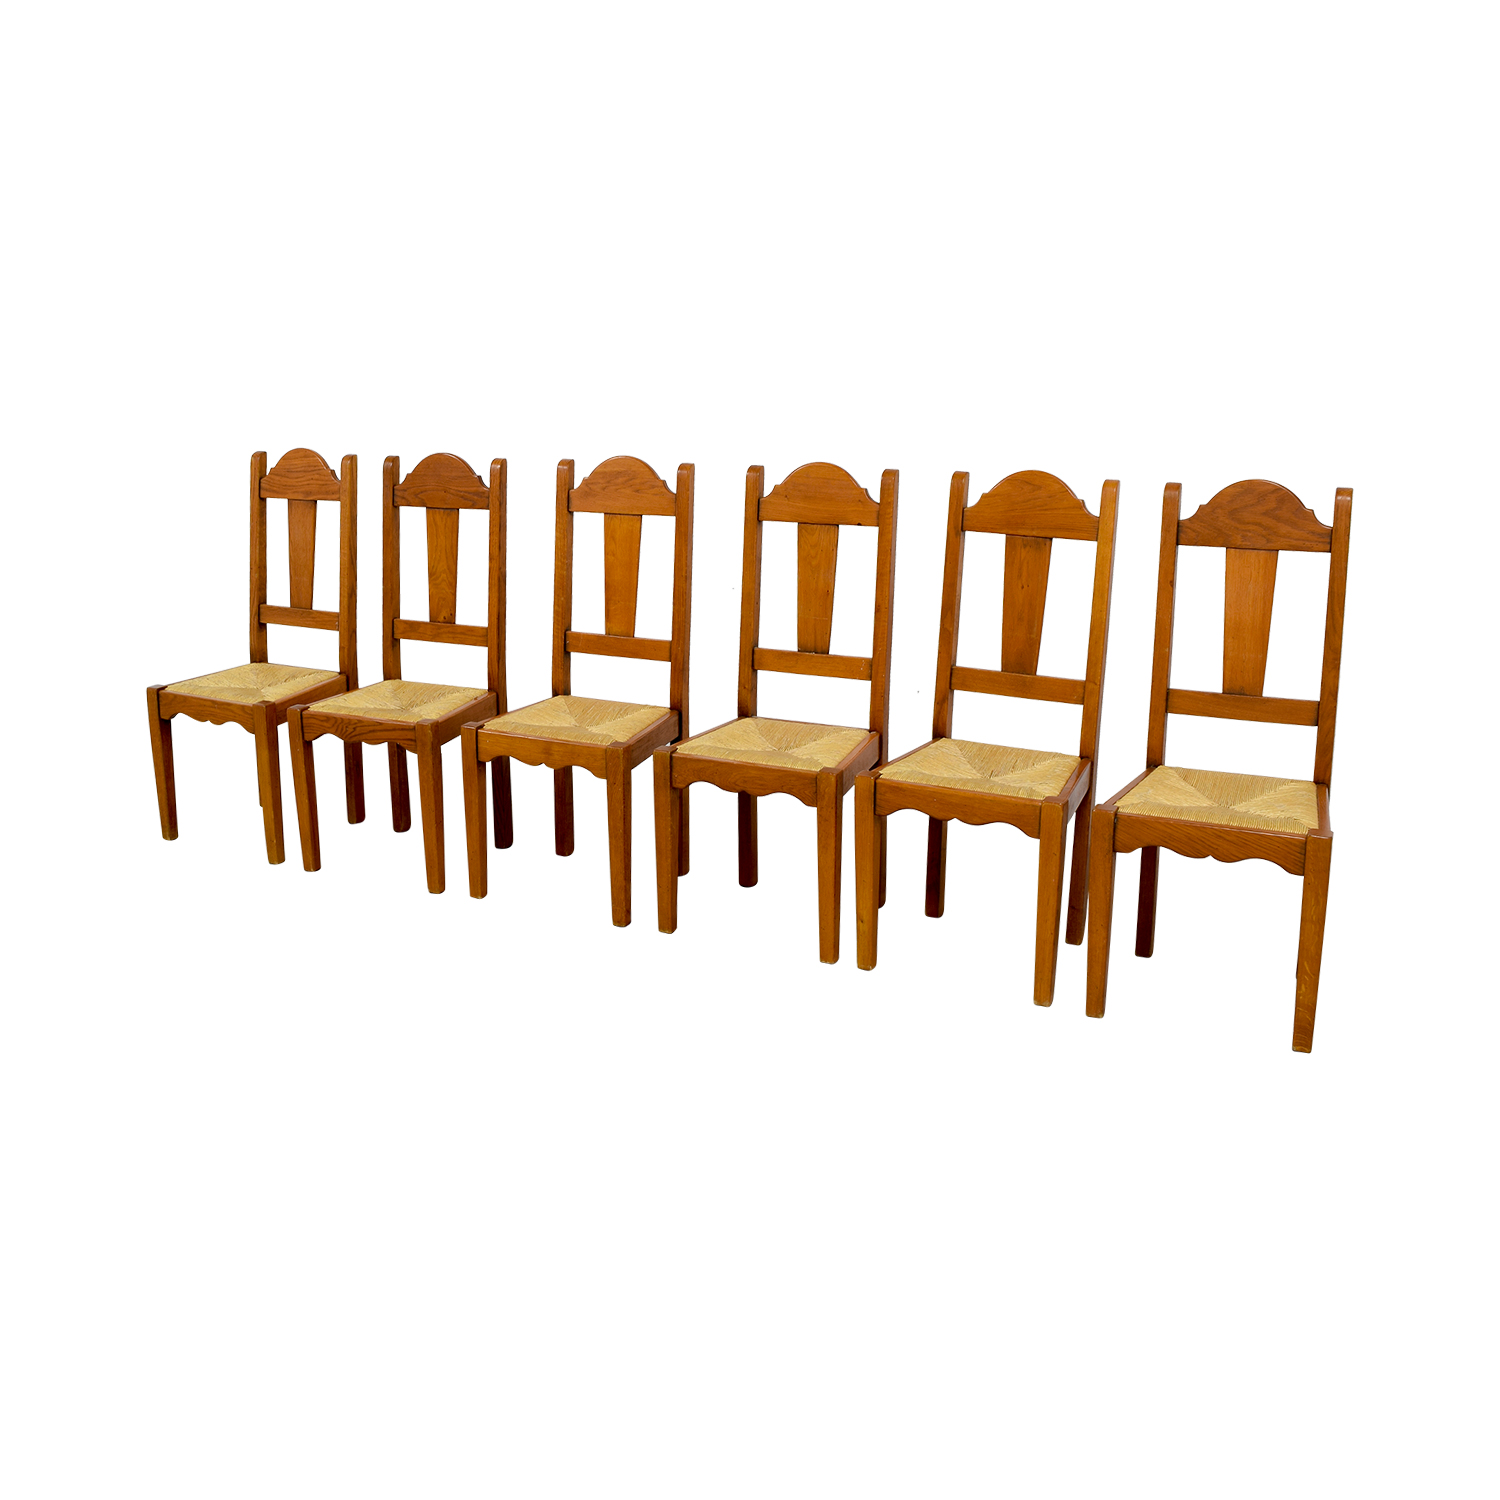 buy ABC Carpet and Home ABC Carpet and Home Rush Weave Wood Chairs online